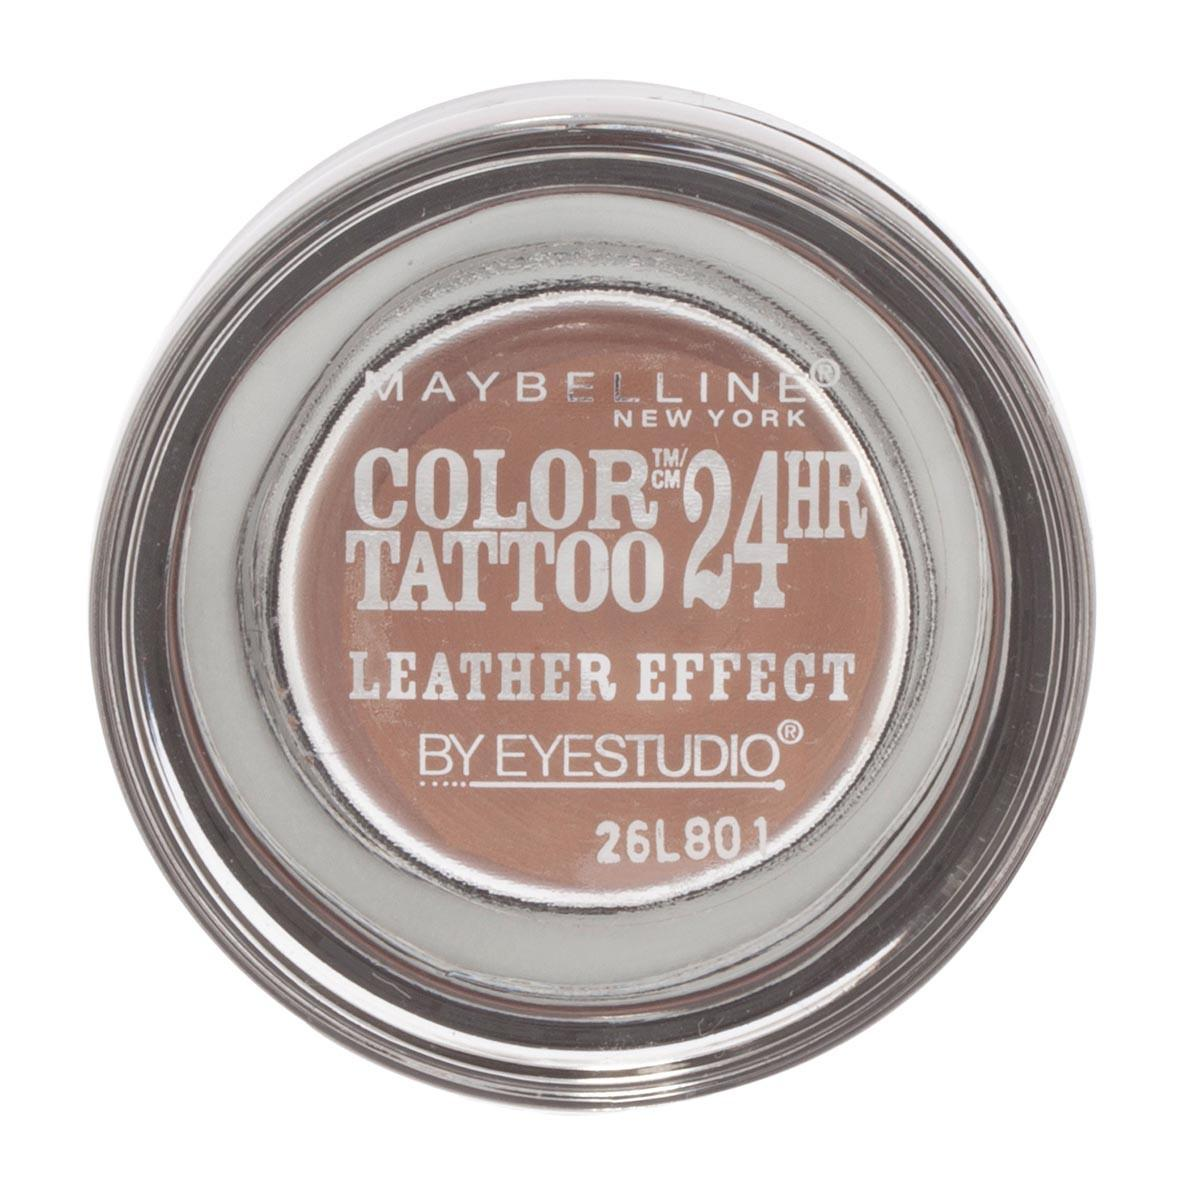 Maybelline Color Tattoo 24H 098